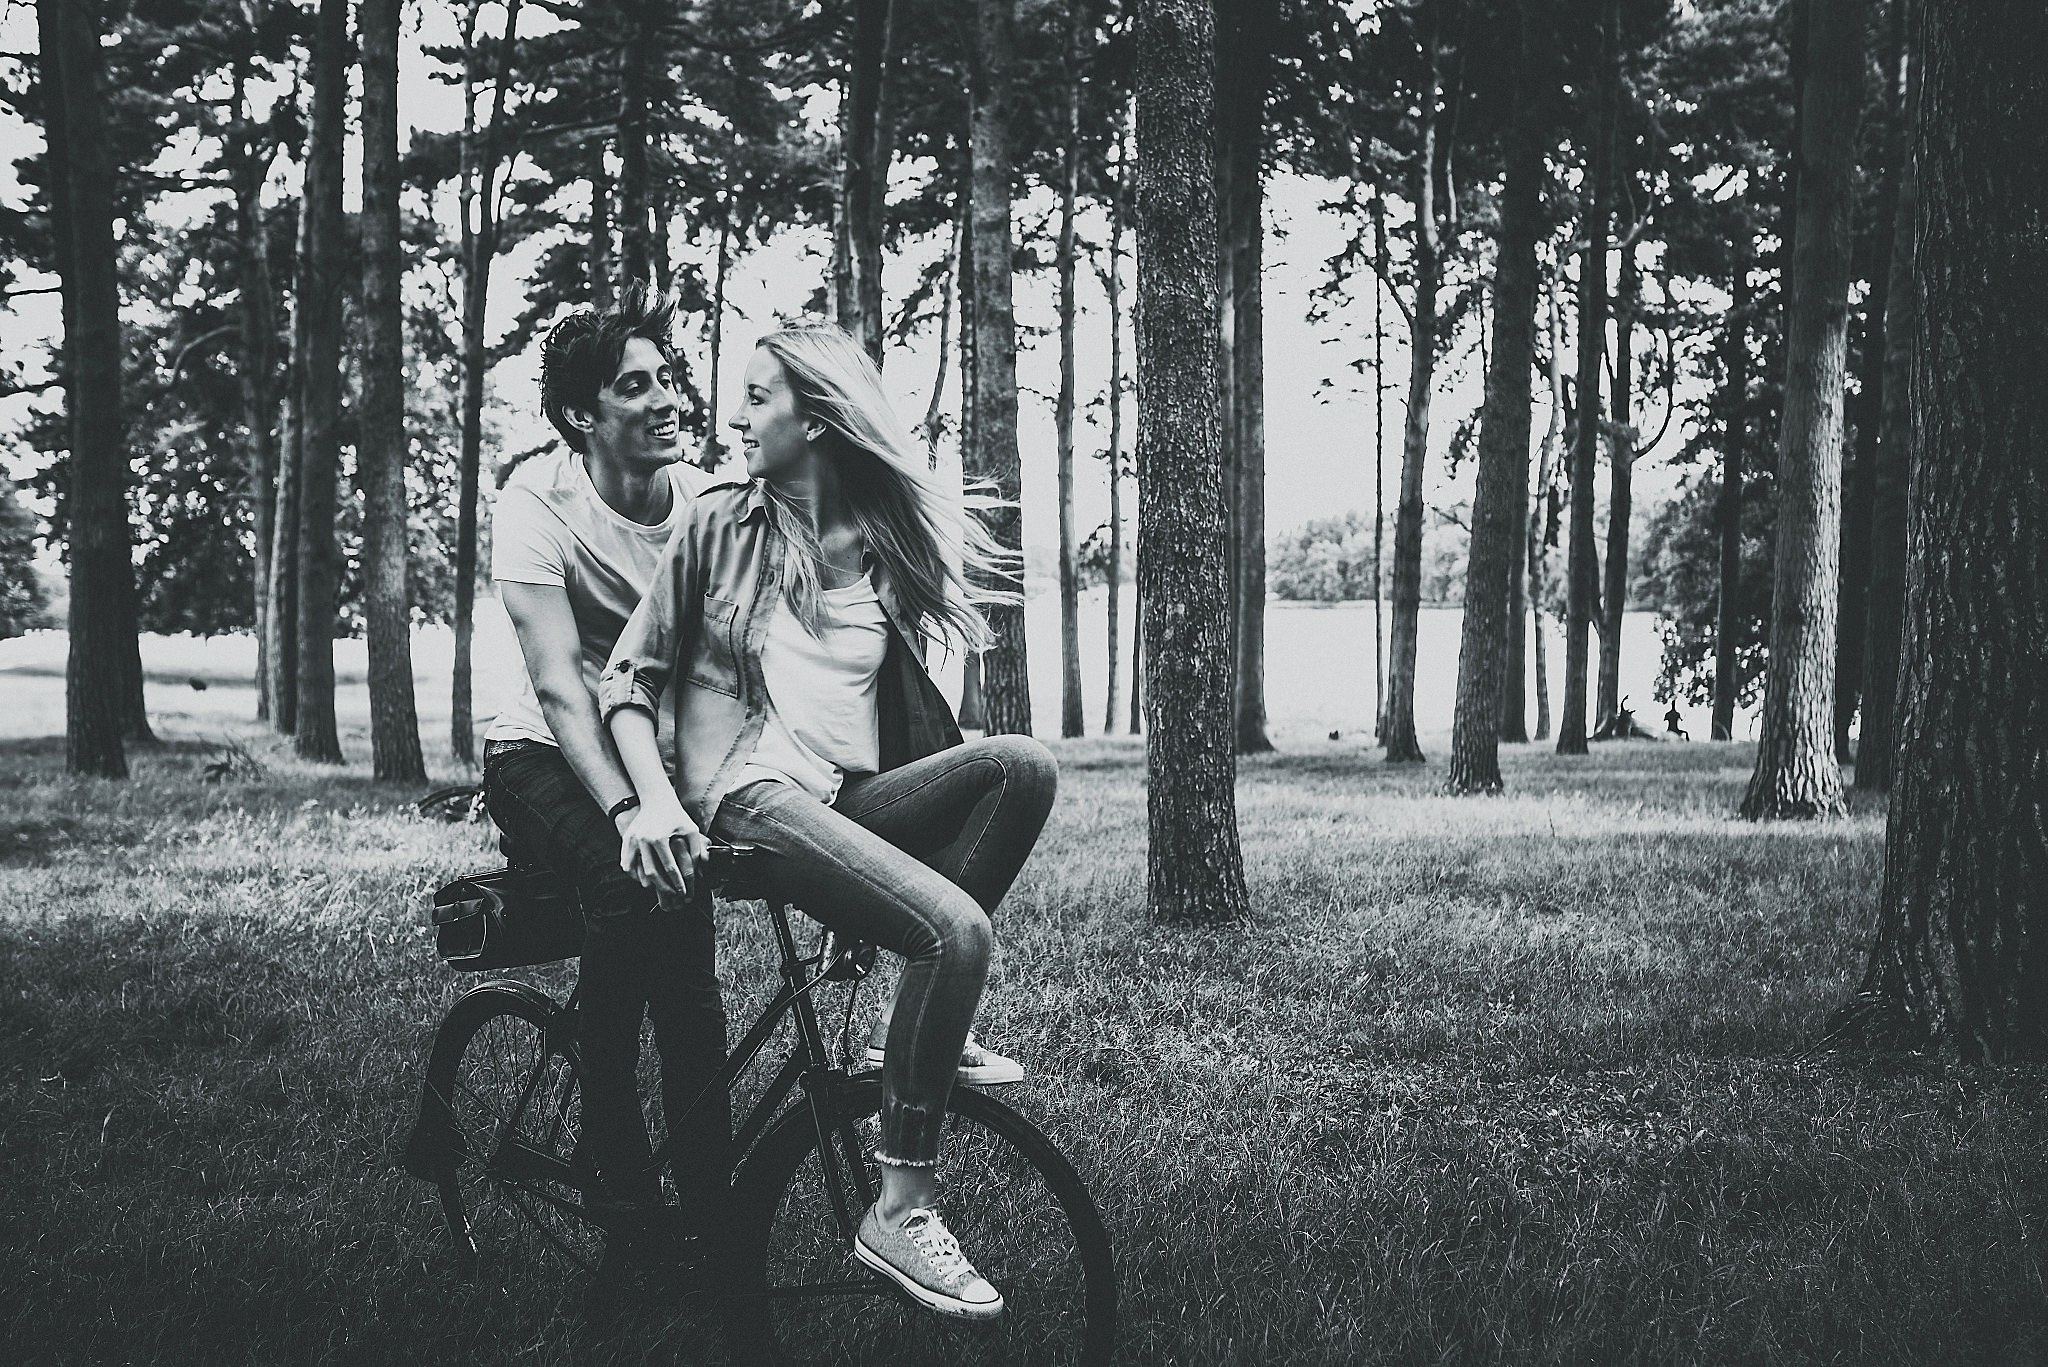 Lauren & Christopher looking at each other smiling on vintage bike at Tatton Park, Cheshire